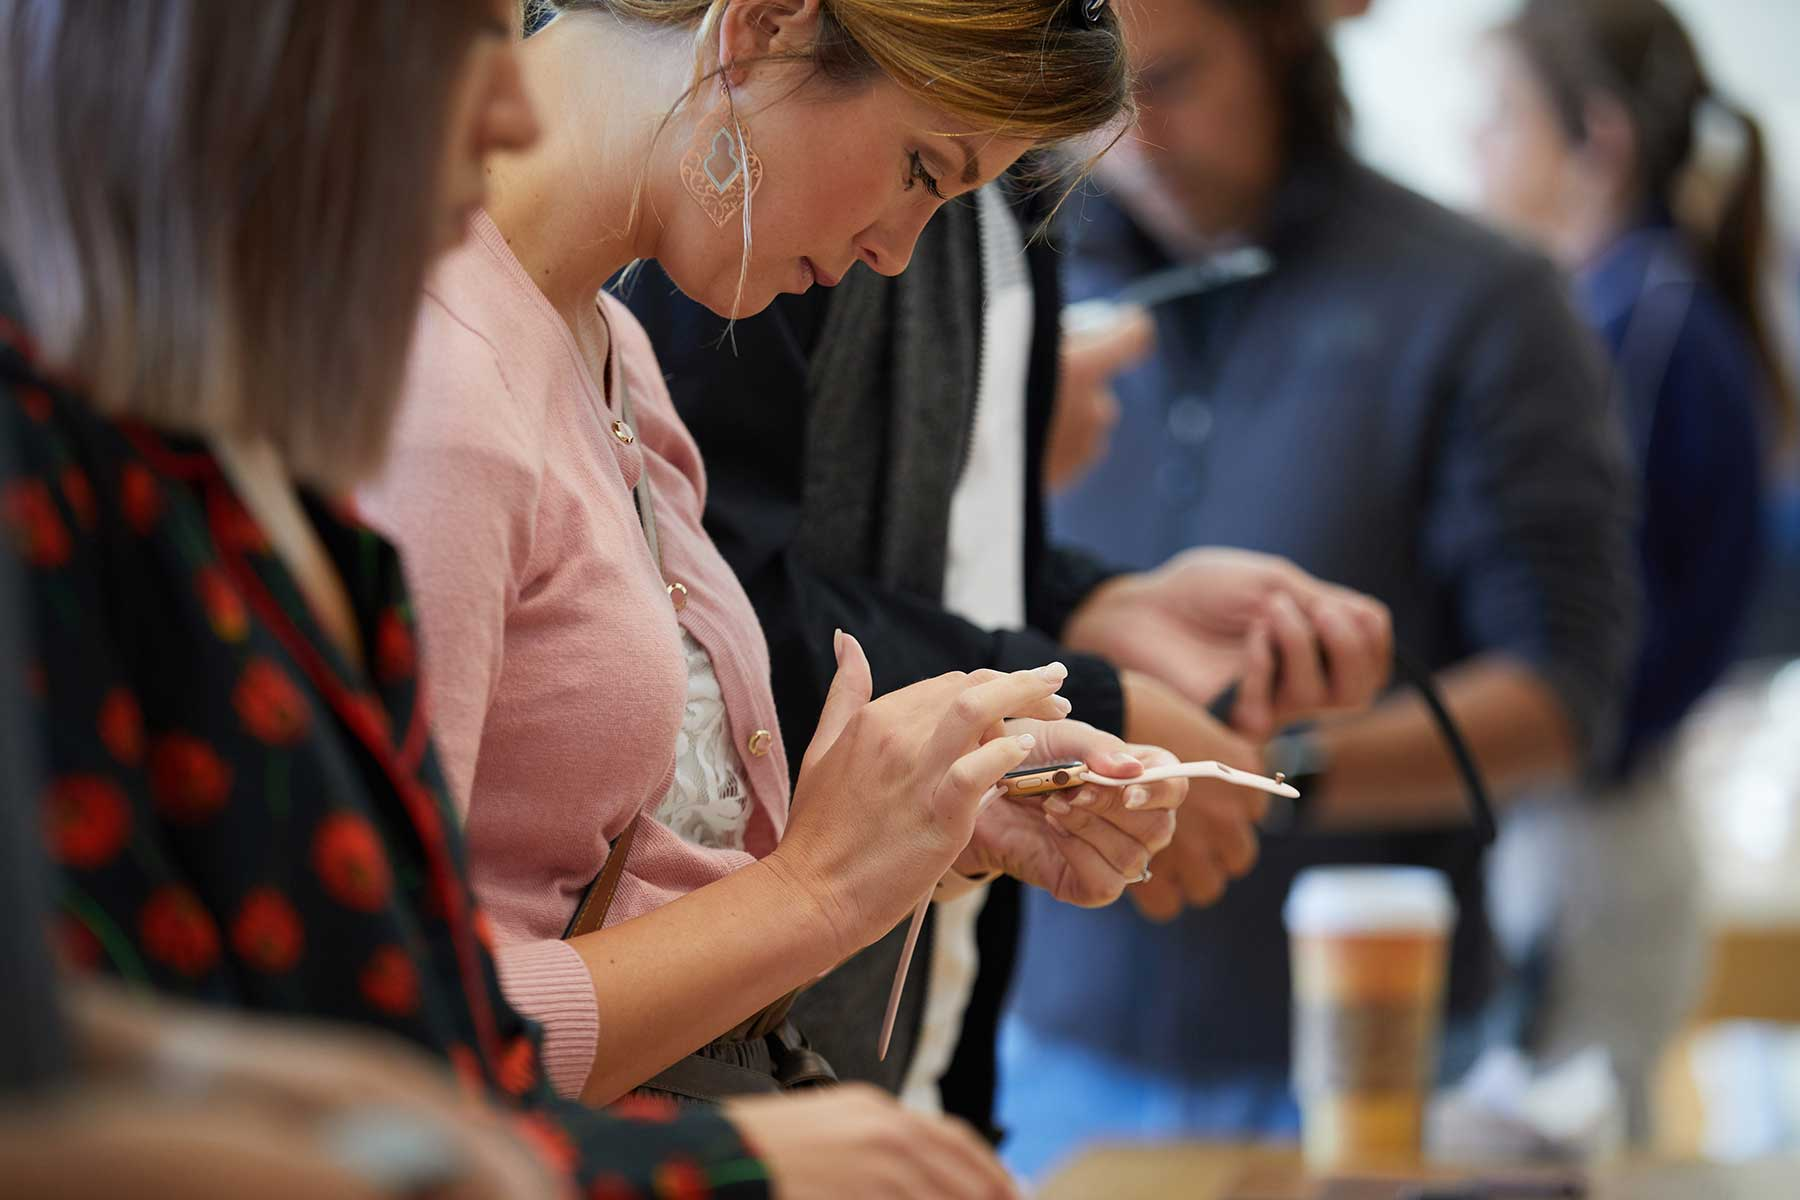 Woman-with-Apple-Watch-Series-4-in-Apple-Store